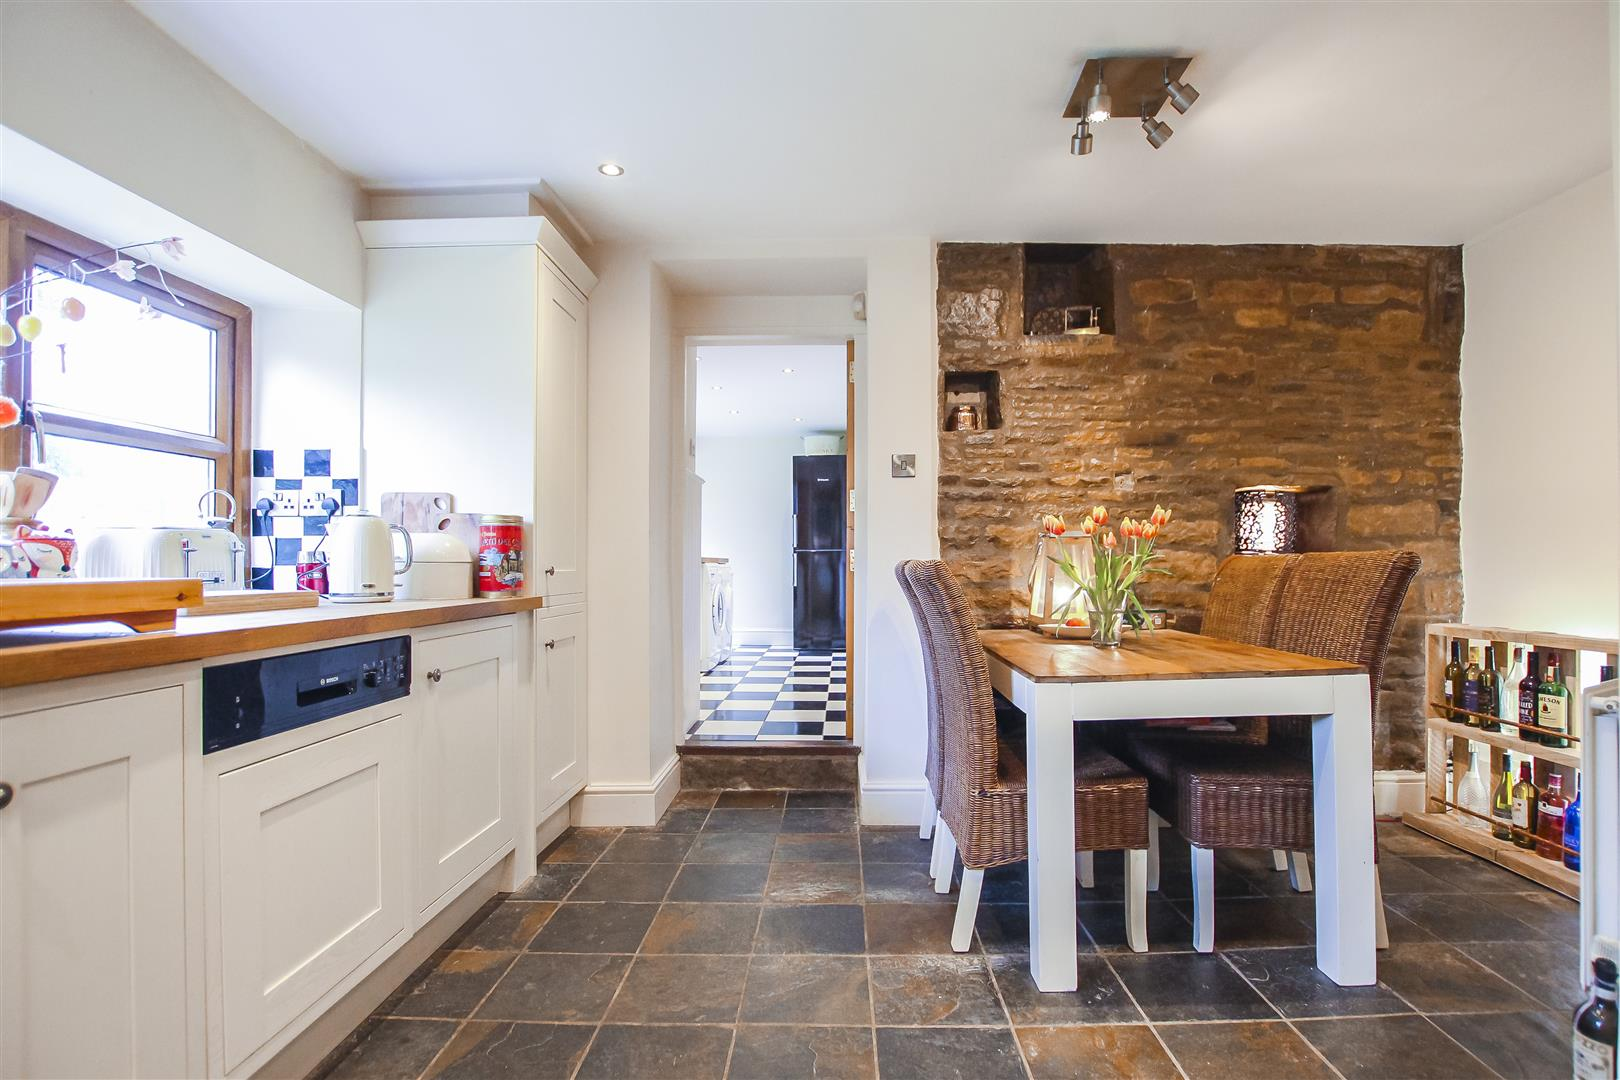 4 Bedroom Farmhouse For Sale - Image 30